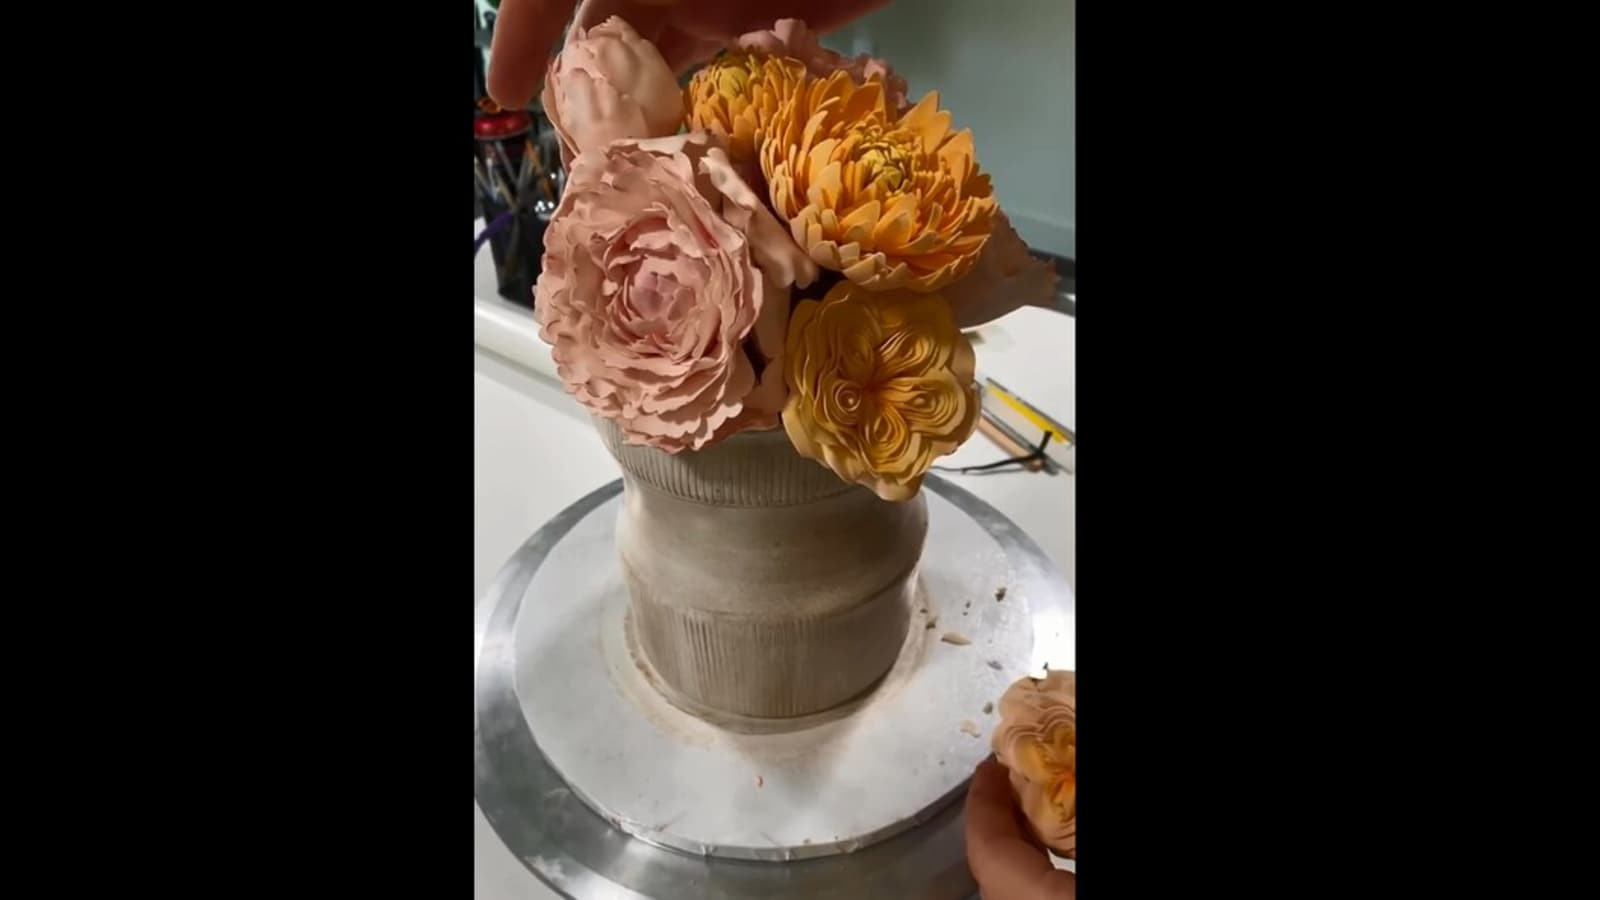 The chef prepares an exquisite cake that looks like a bouquet of flowers.  Watch |  Trend